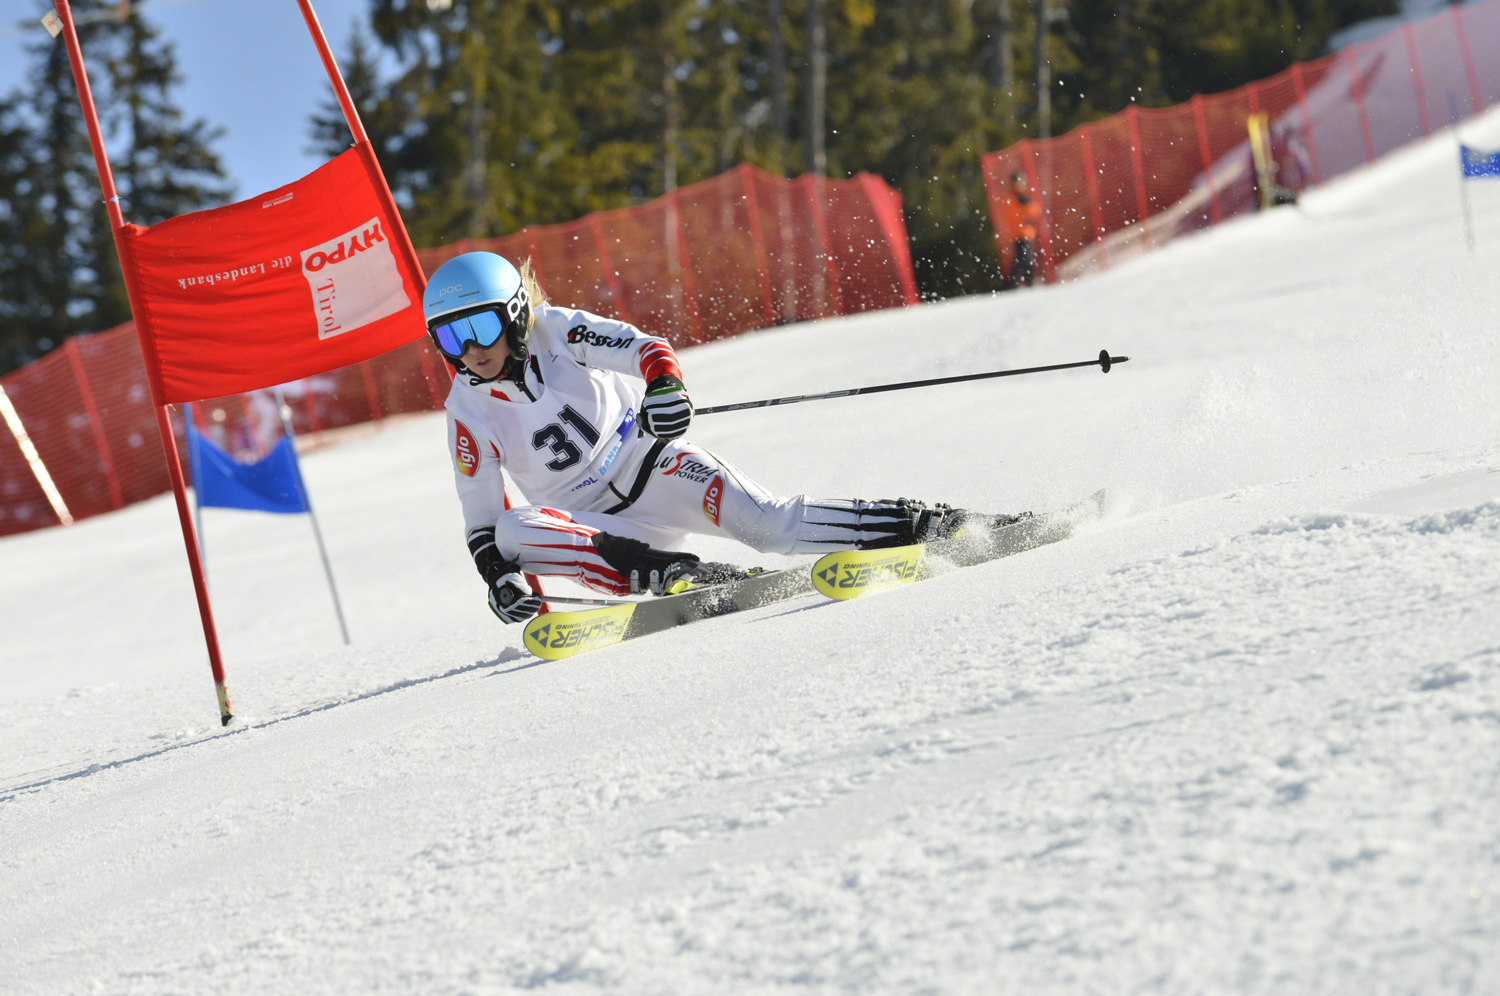 Ski race in Kühtai